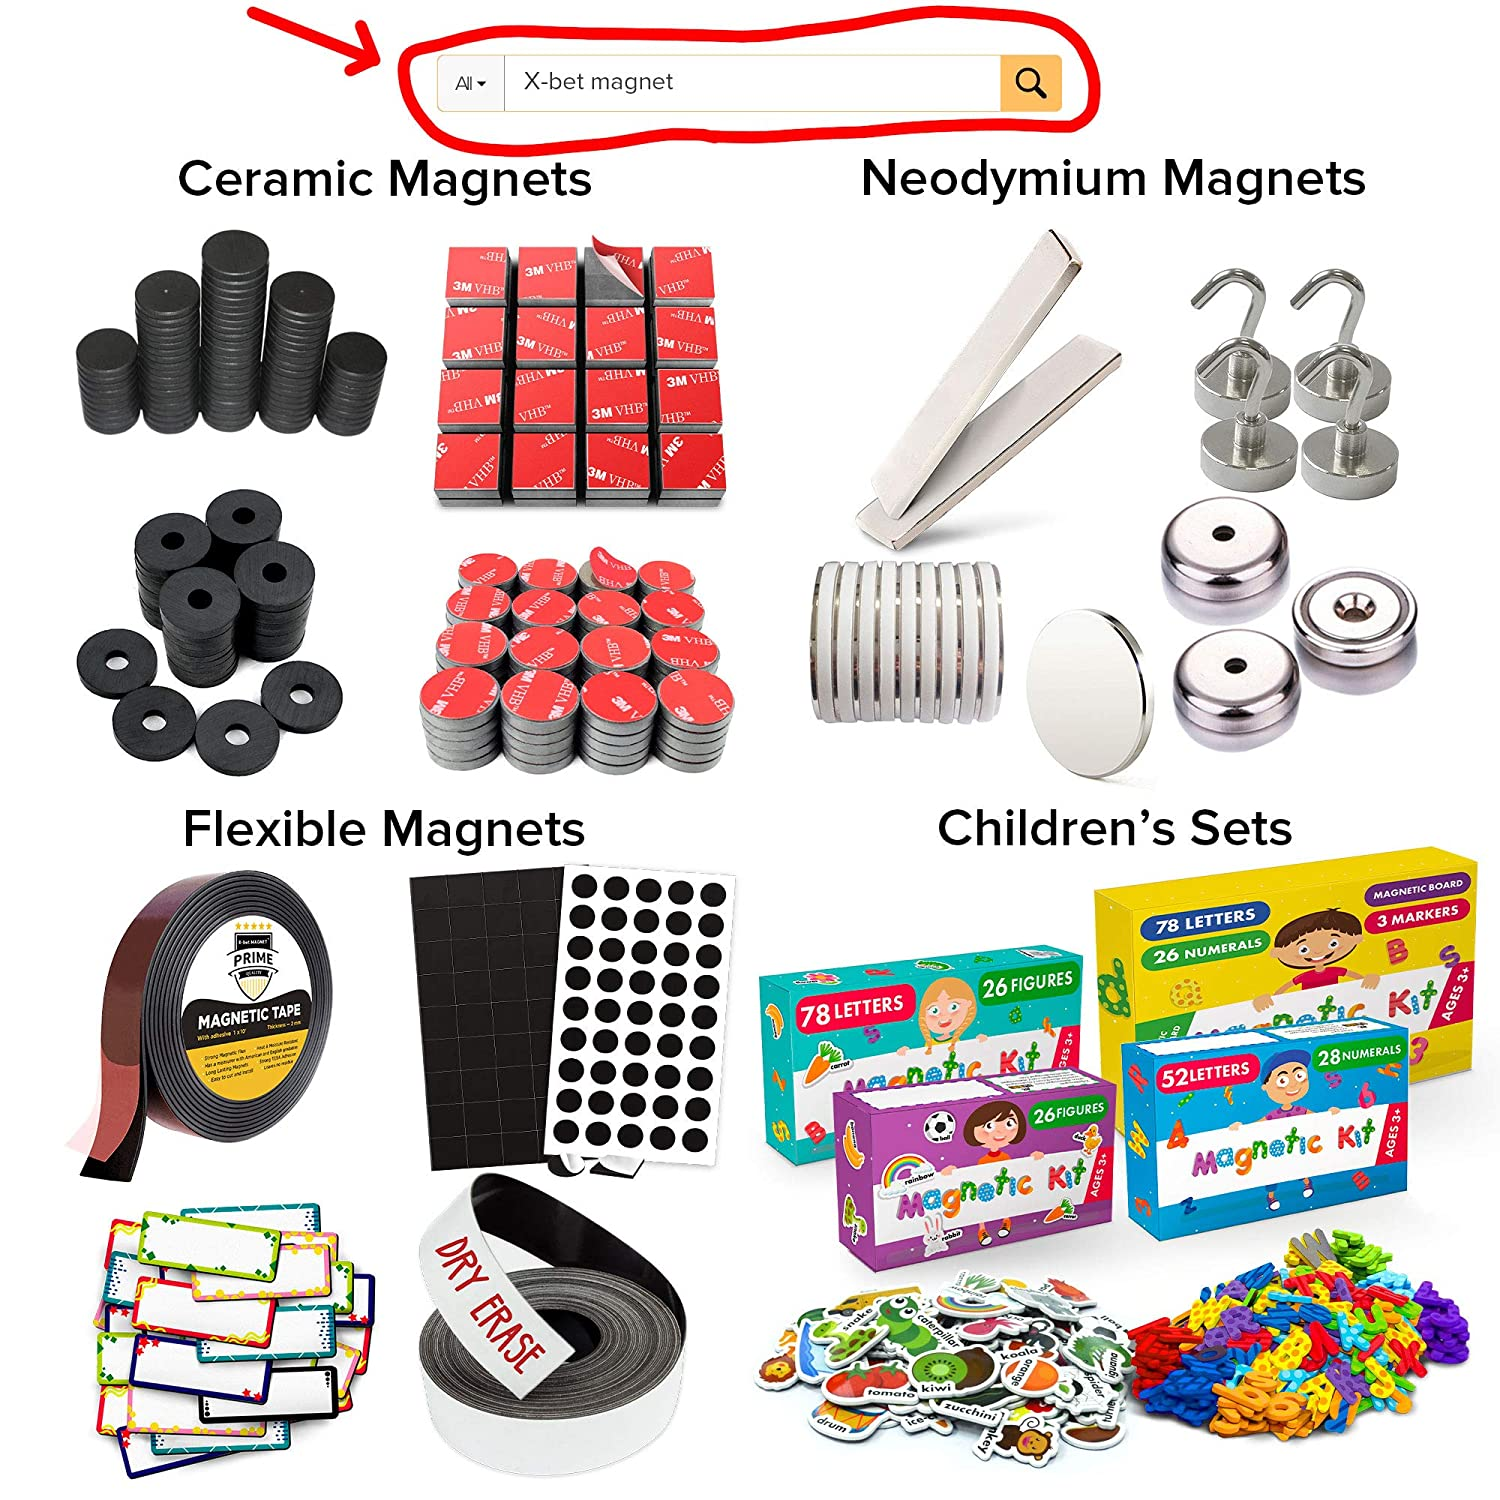 - Magnets for Crafts Hobbies 1.18 Inch Science Bottlecaps Tiny Round Disc Fridge Magnets X-bet MAGNET /™ Bulk Lot of 70 Pcs Refrigerator Magnets 30mm Ceramic Industrial Magnets